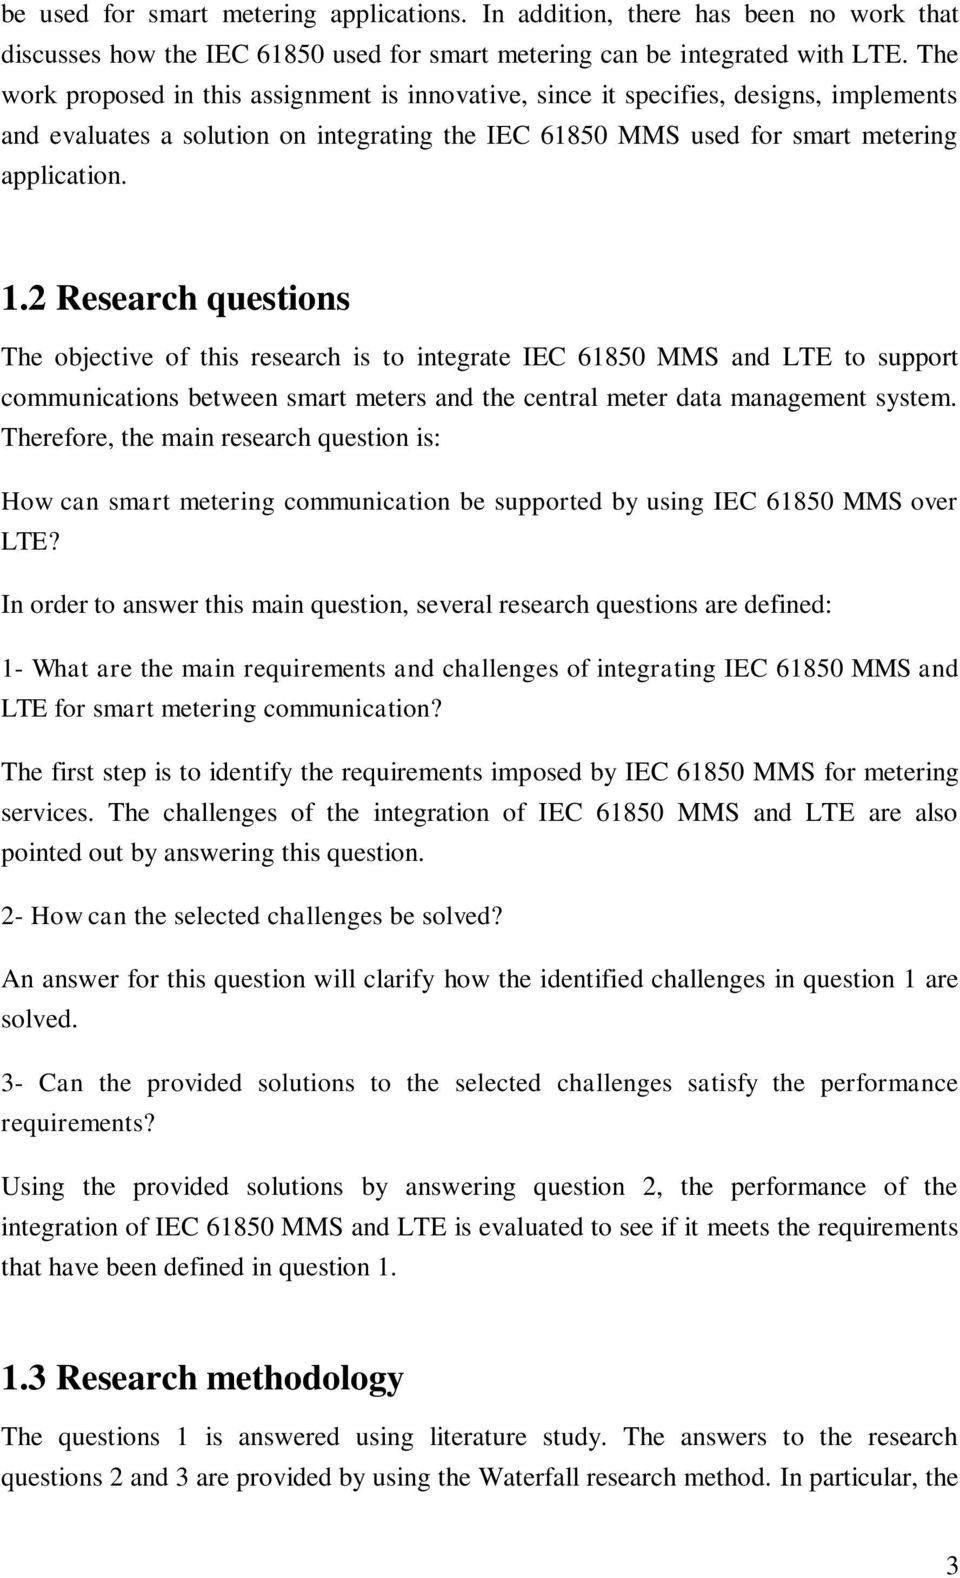 2 Research questions The objective of this research is to integrate IEC 61850 MMS and LTE to support communications between smart meters and the central meter data management system.